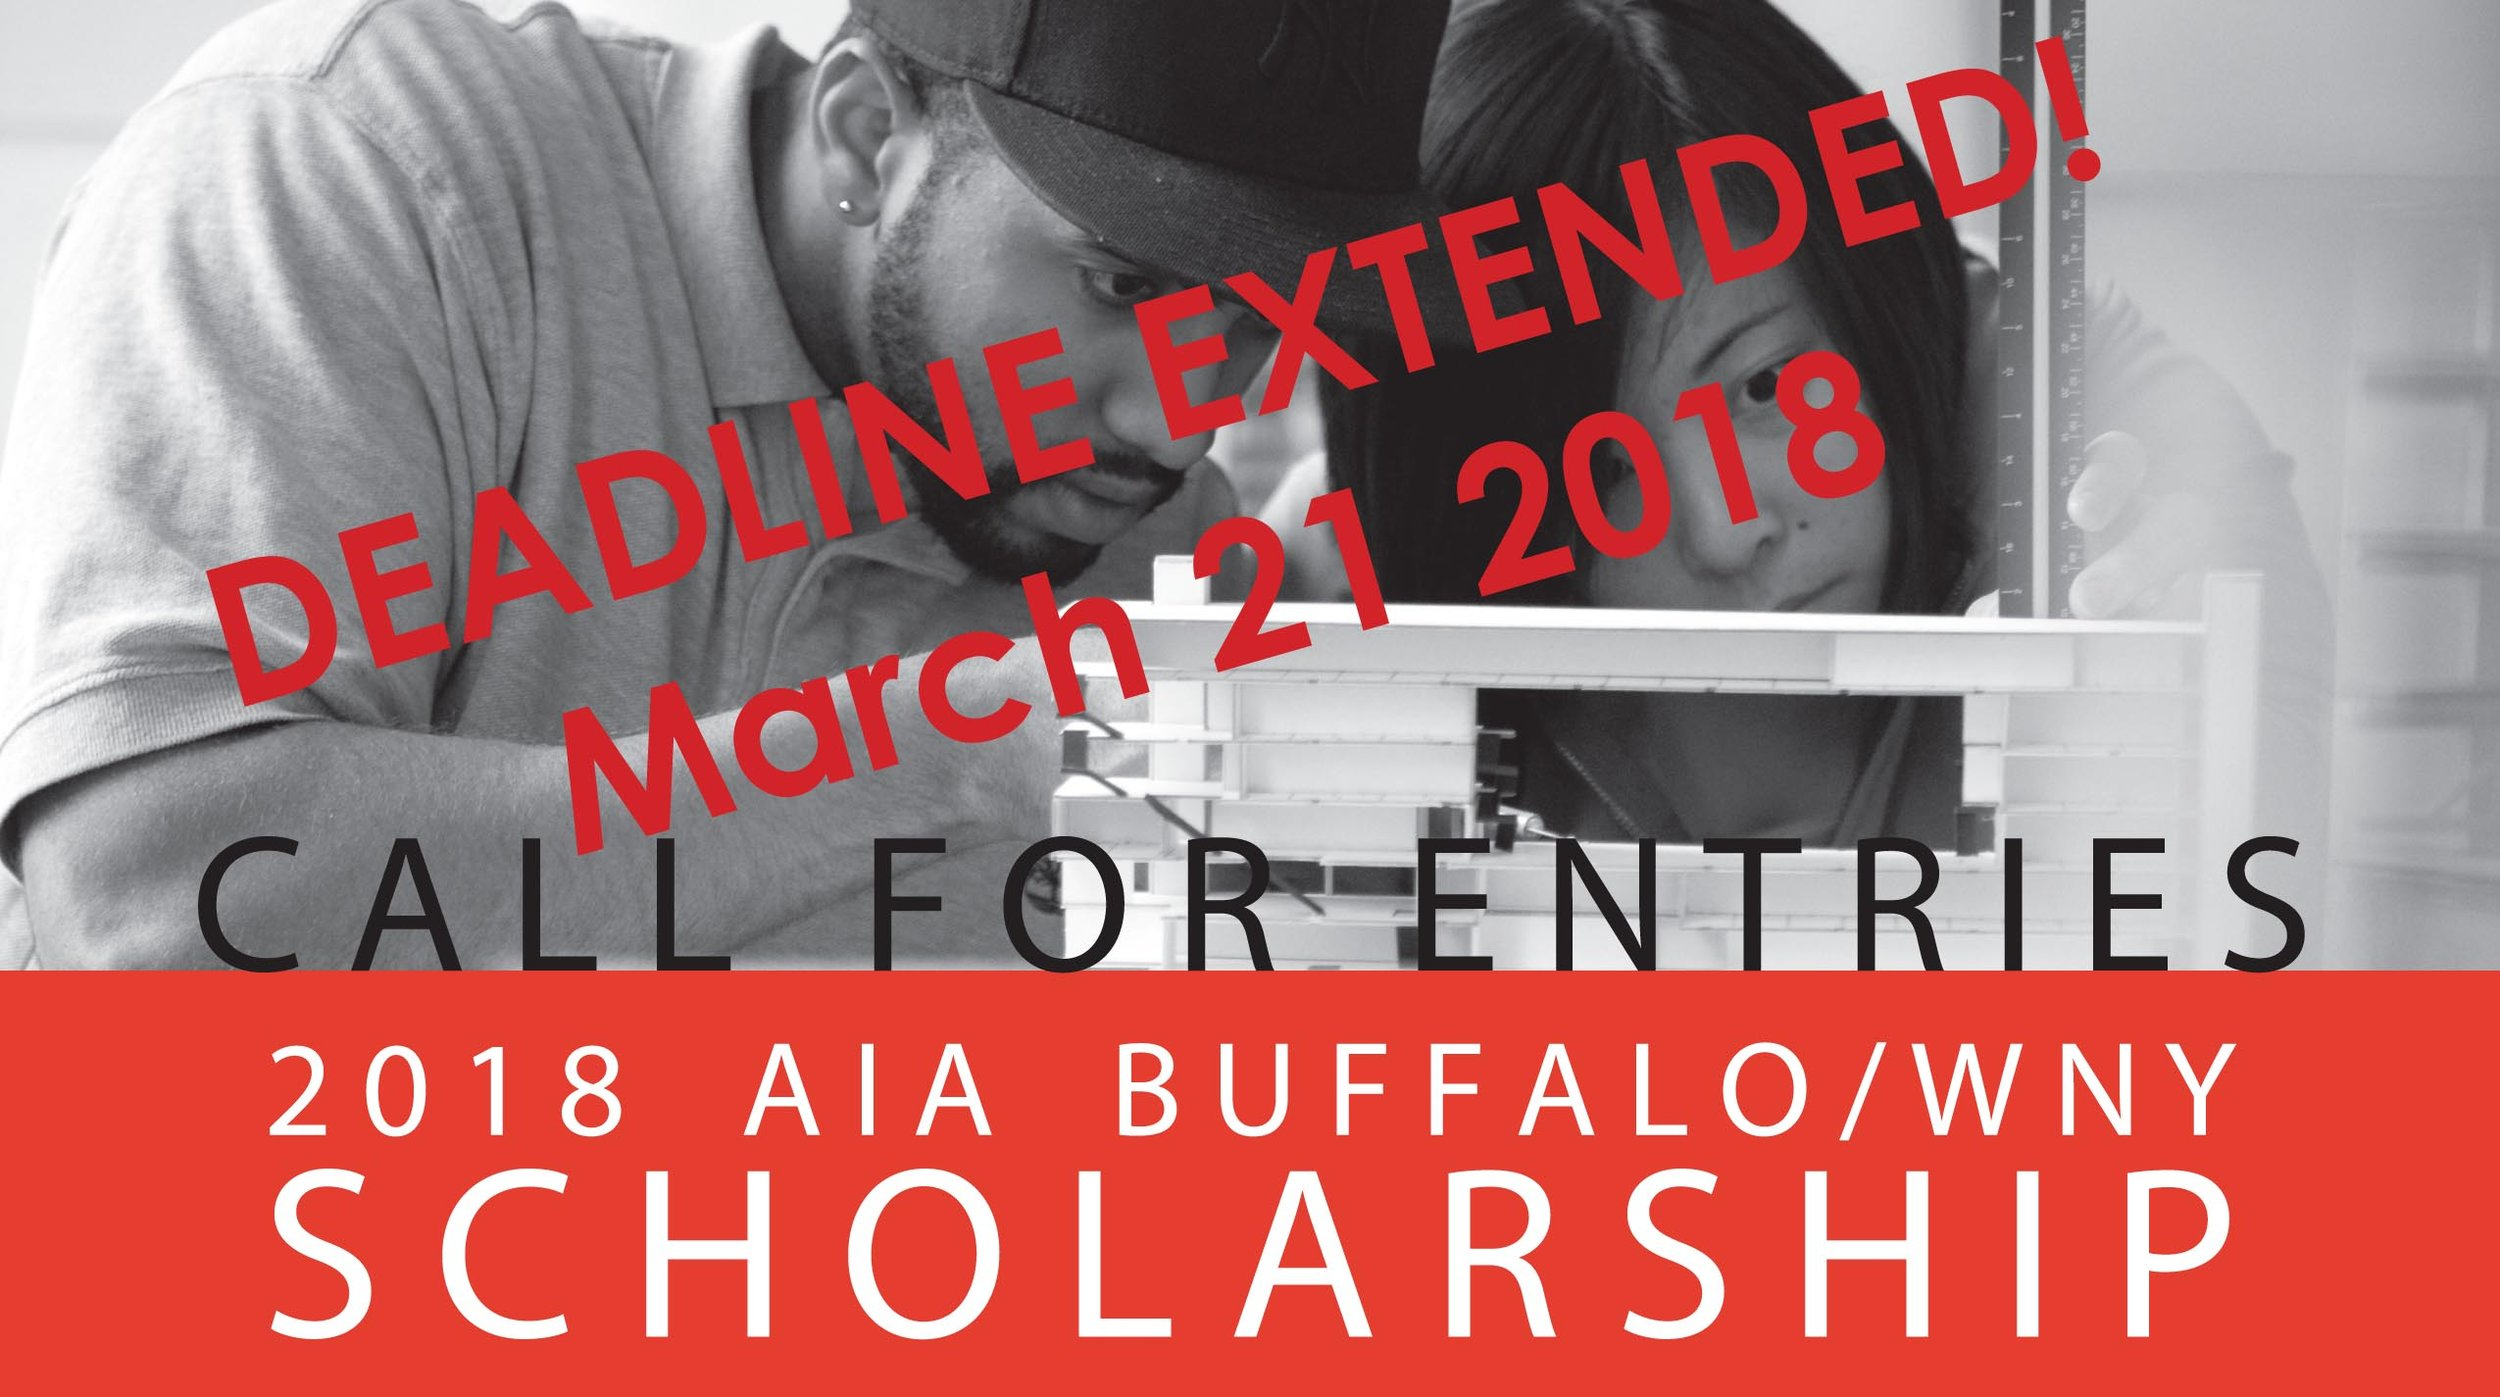 Scholarship CFE Website 2018_Deadline Extended.jpg